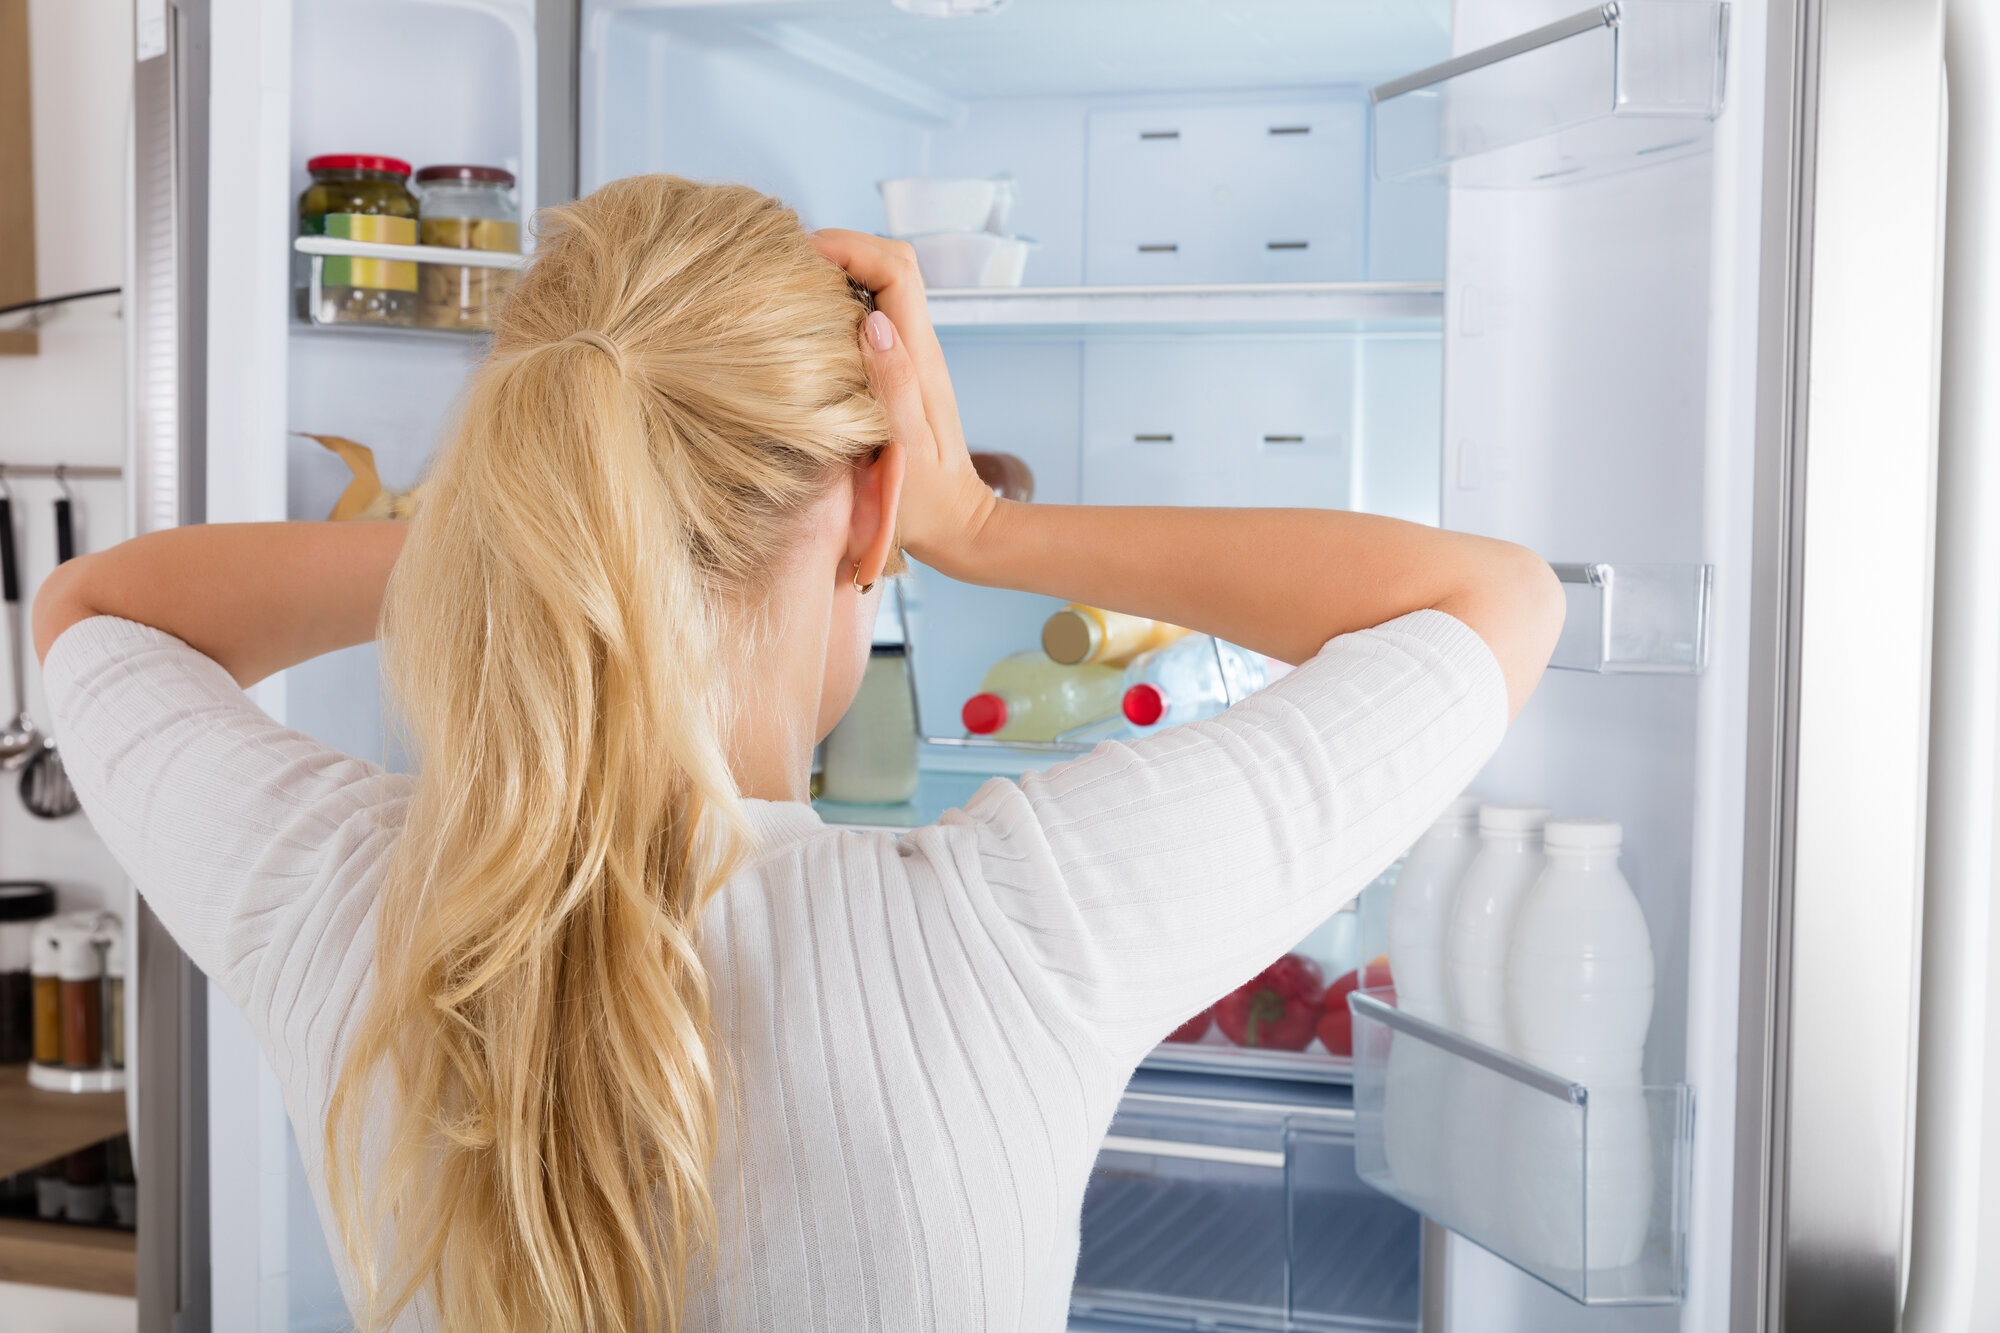 Woman looking into fridge with hands on head trying to figure out what to eat.